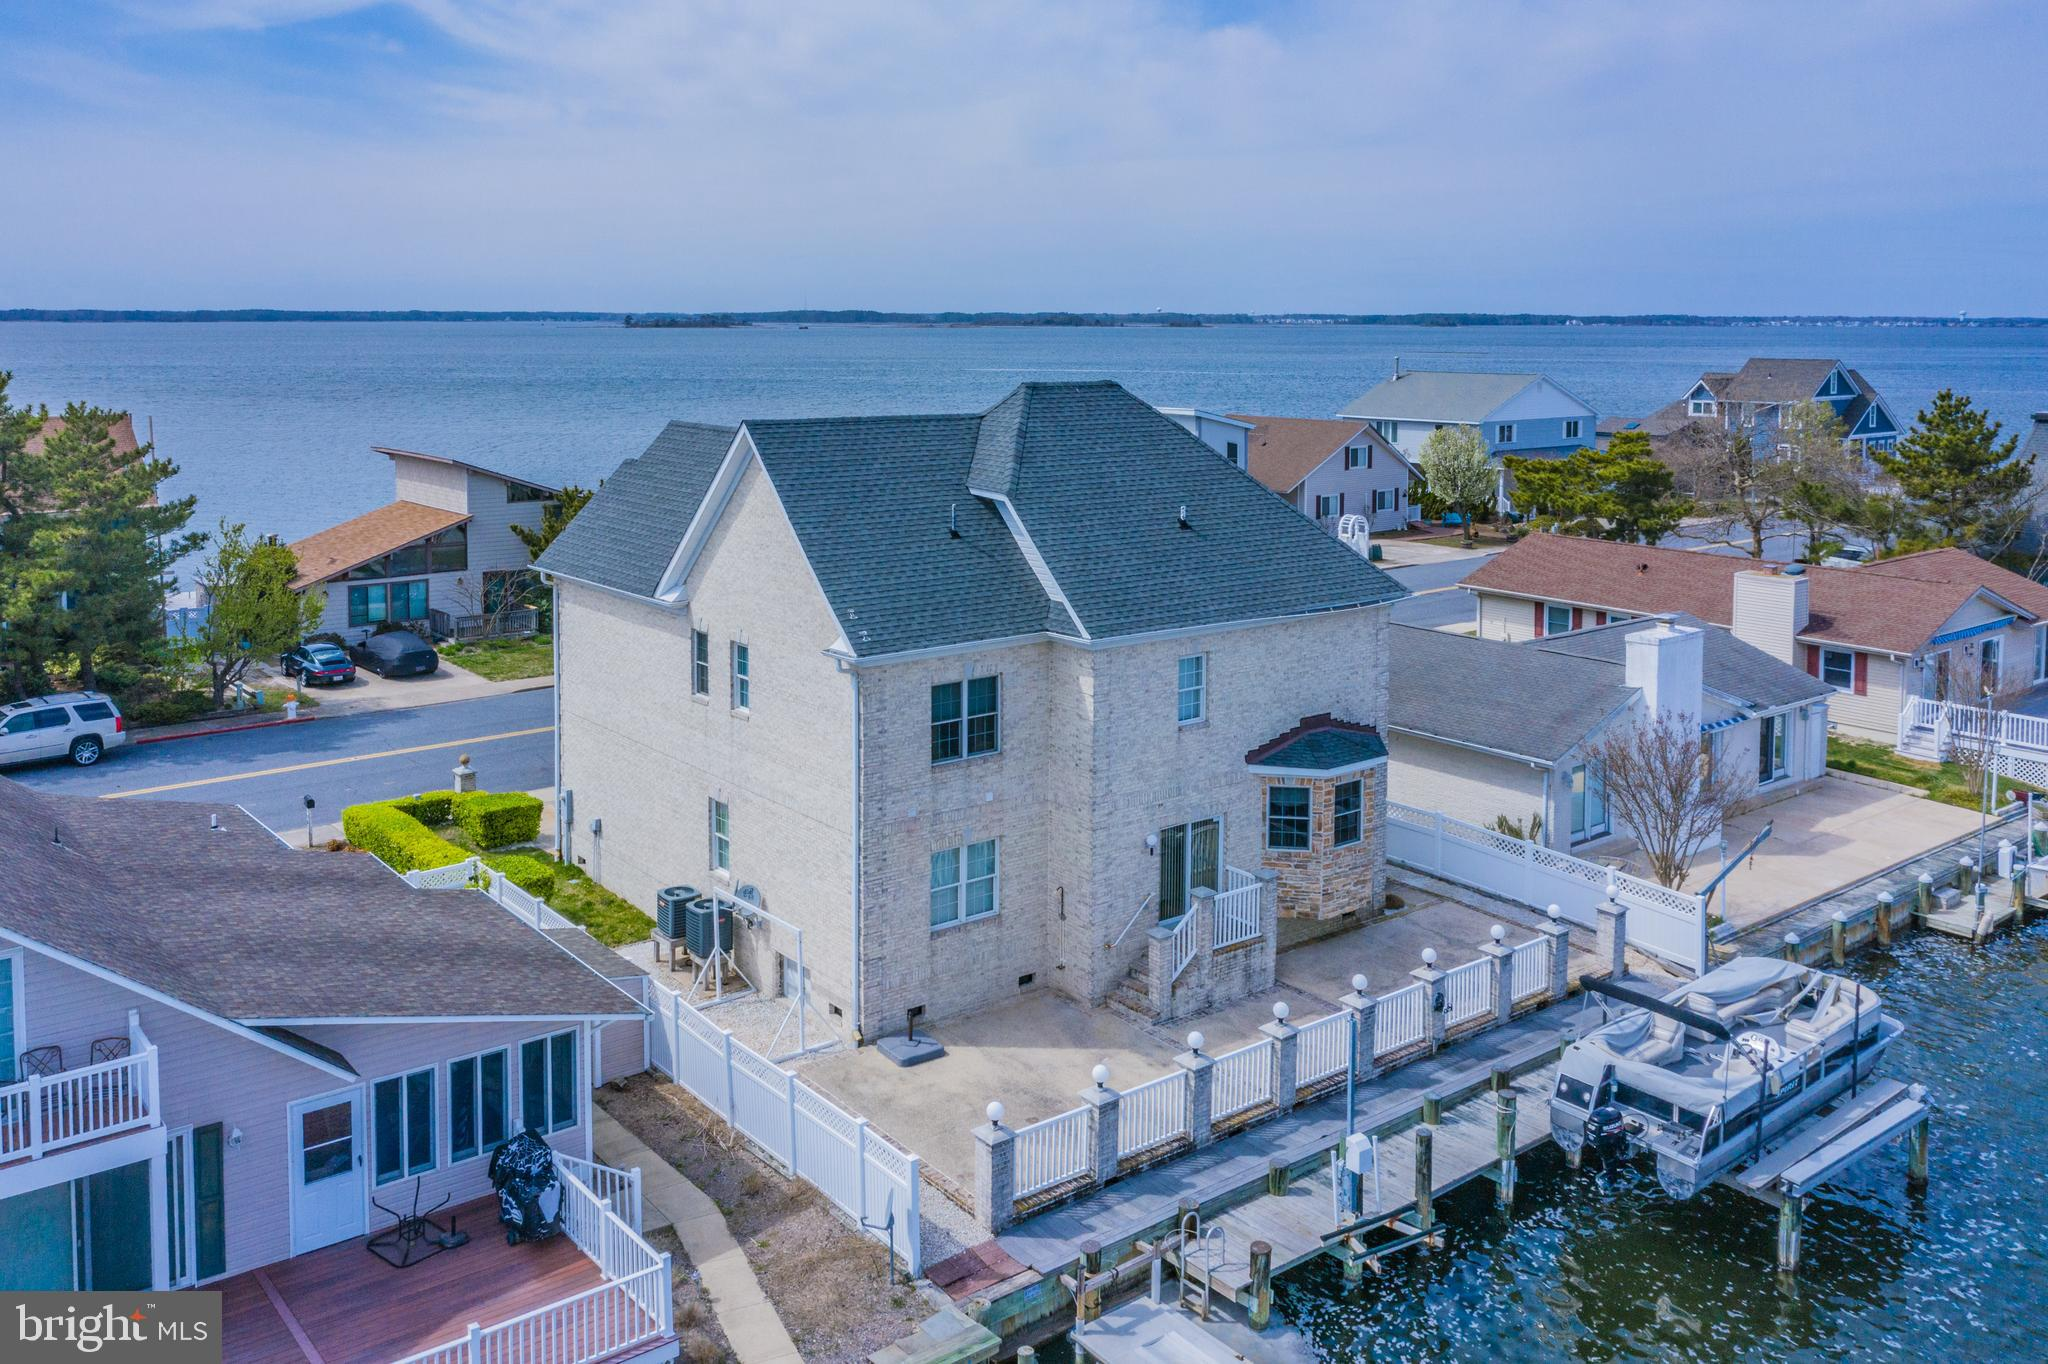 10614 POINT LOOKOUT RD, Ocean City, MD 21842 | MDWO105388